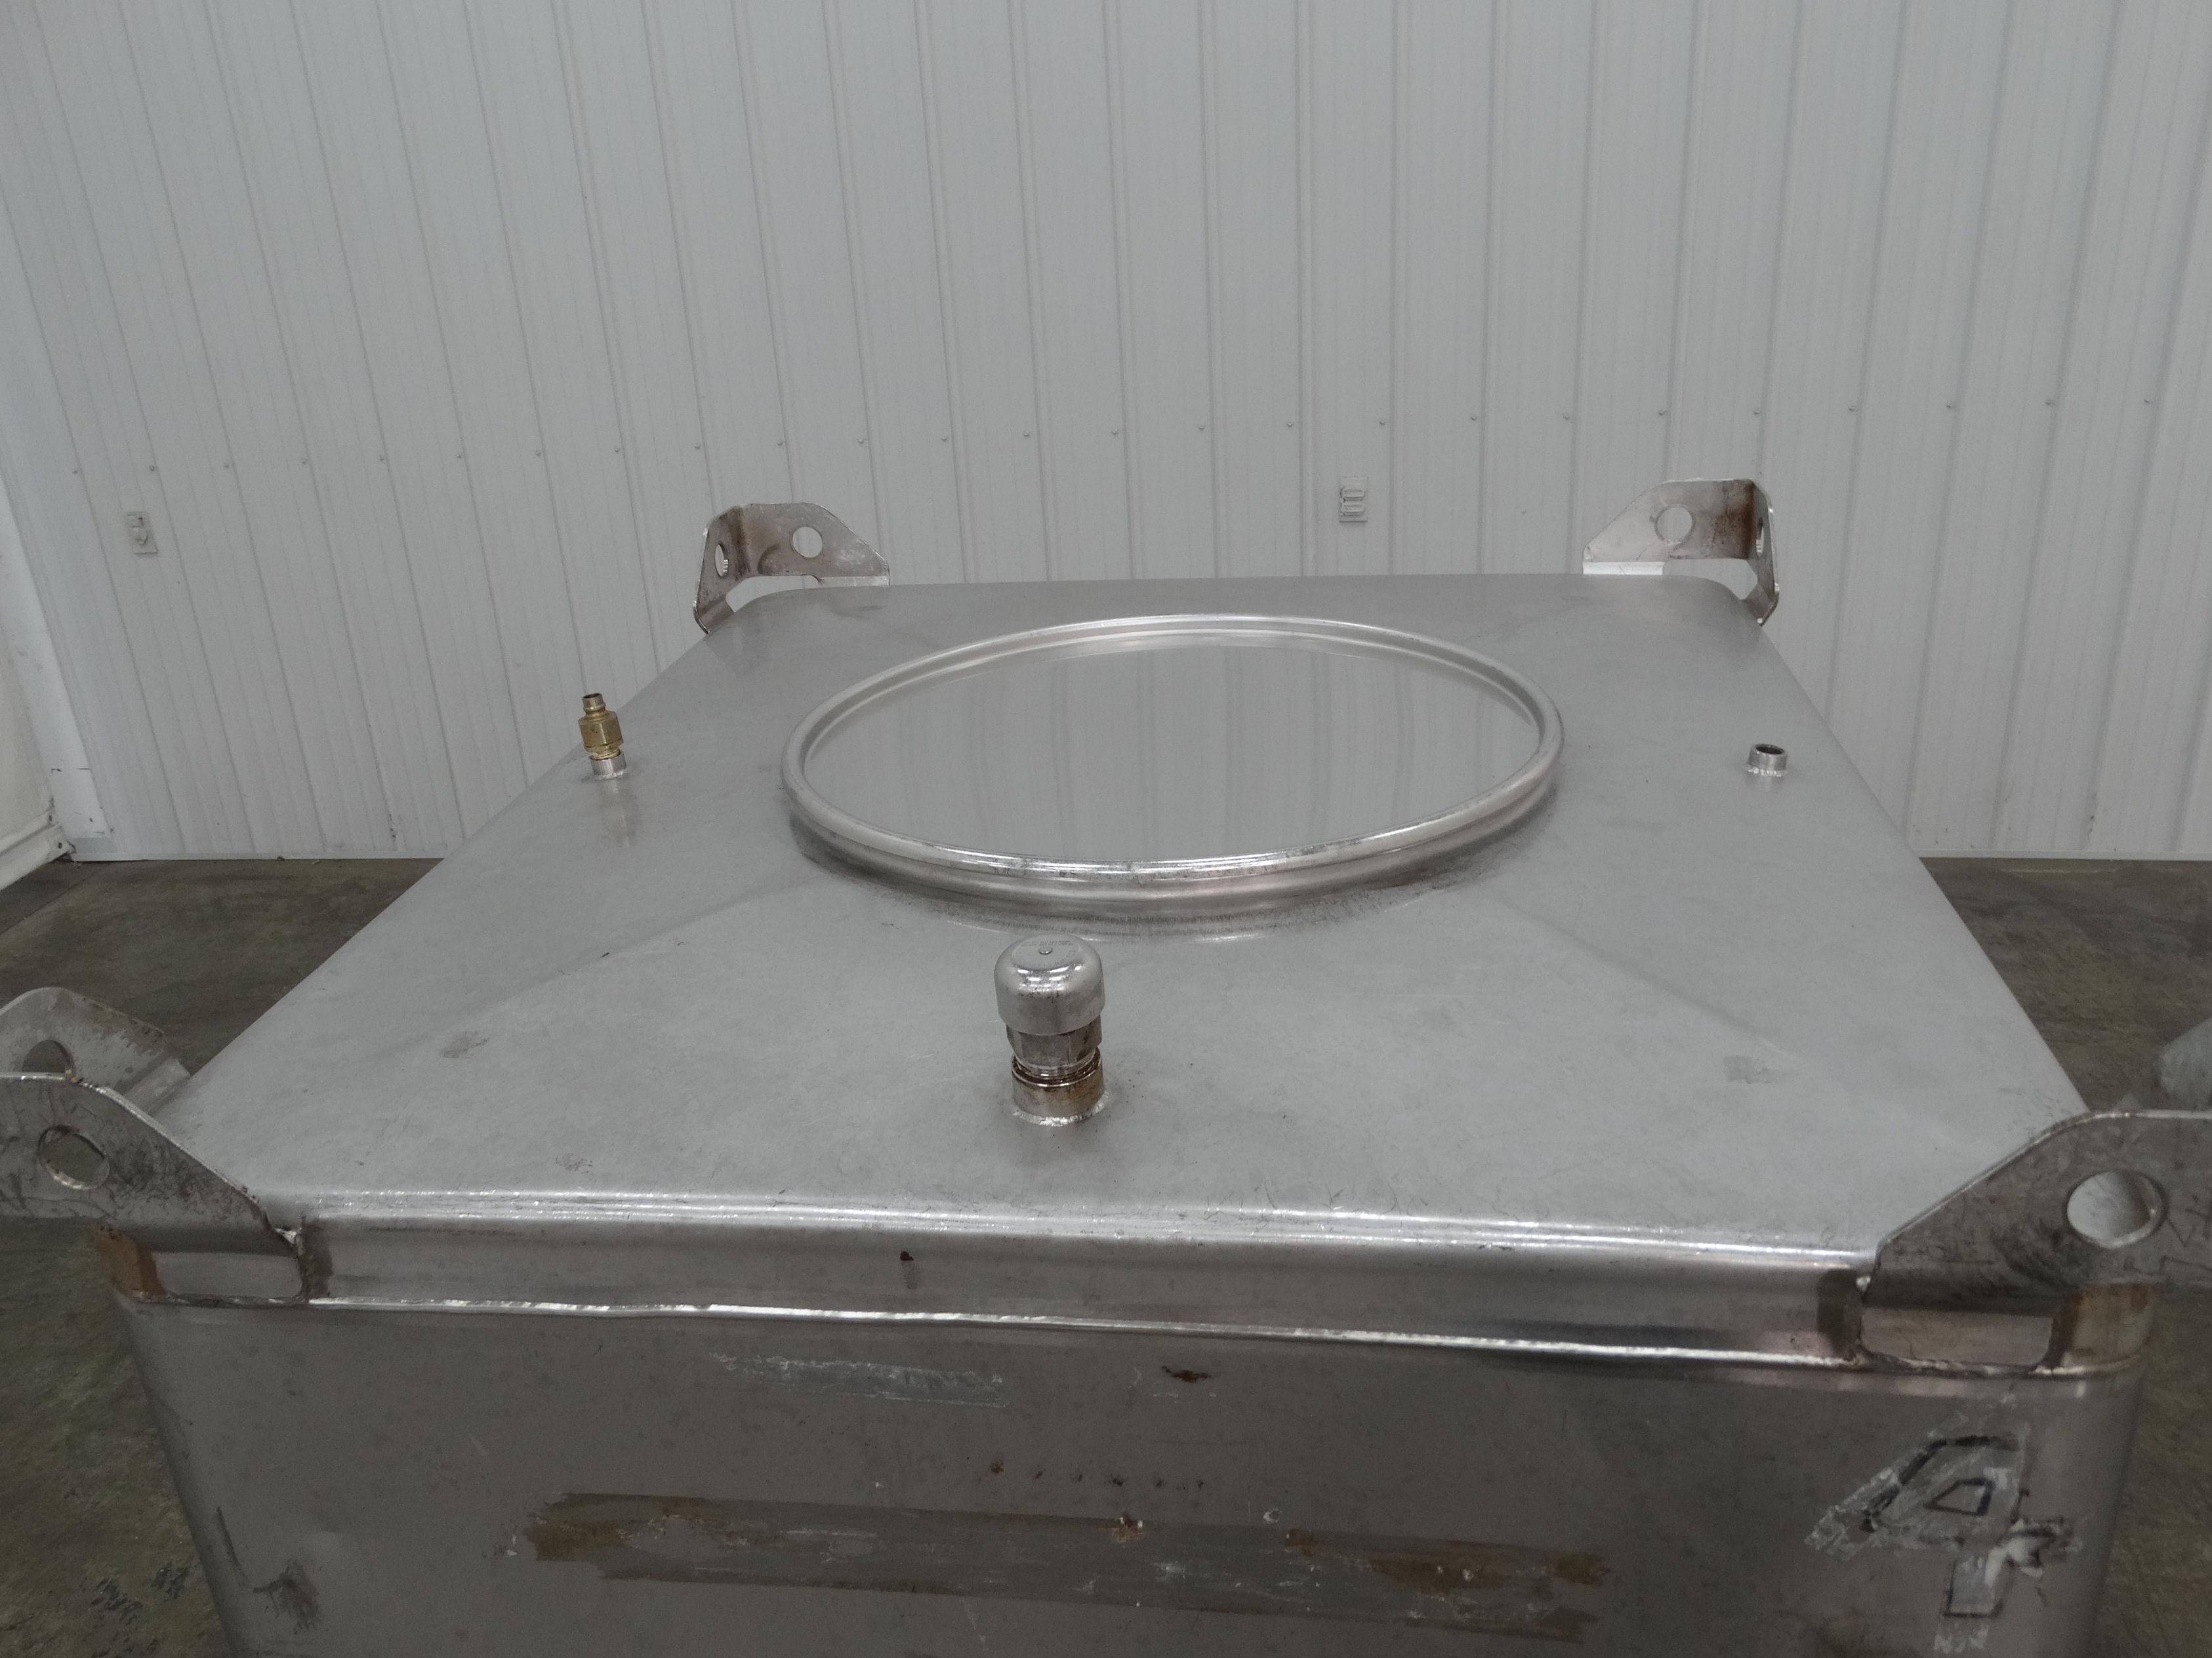 MPE Systems 220 Gallon Stainless Steel Tote D1519 - Image 5 of 7